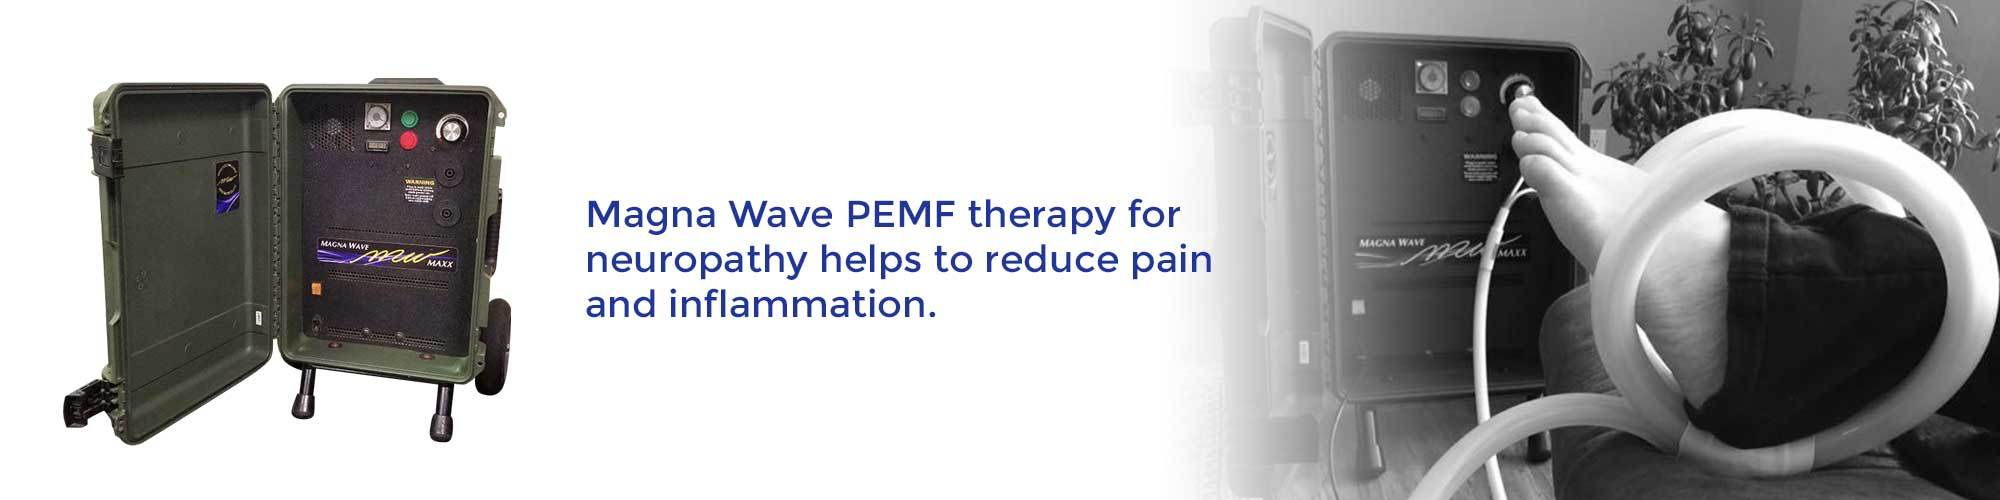 Magna Wave PEMF therapy for neuropathy helps to reduce pain and inflammation